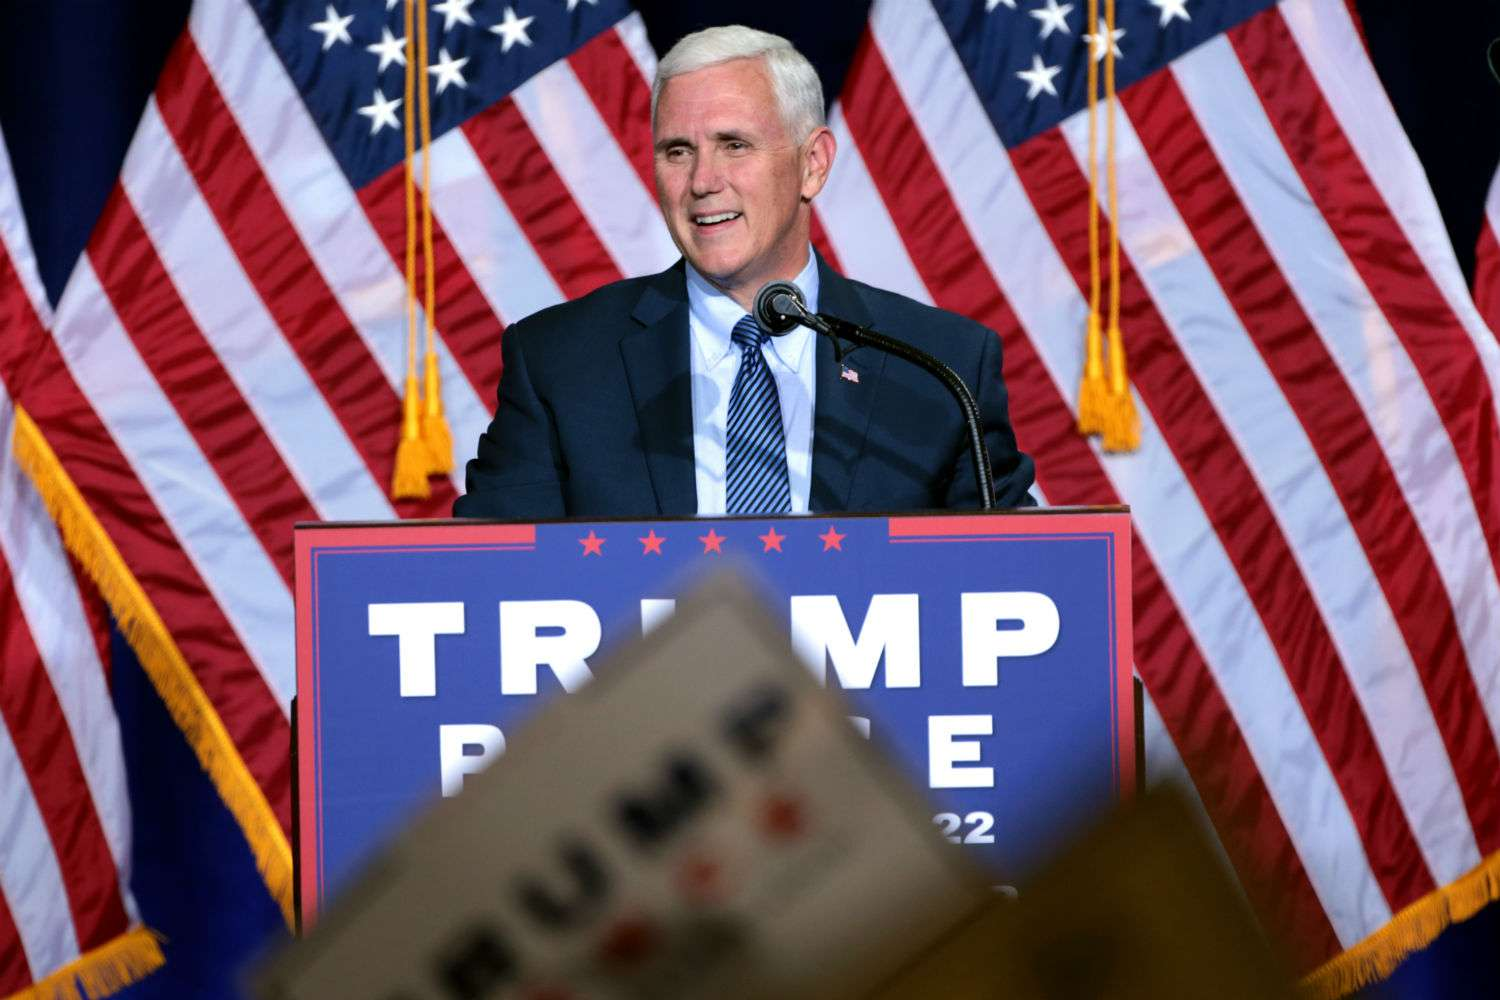 Pence speaks at a rally with American flags behind him.